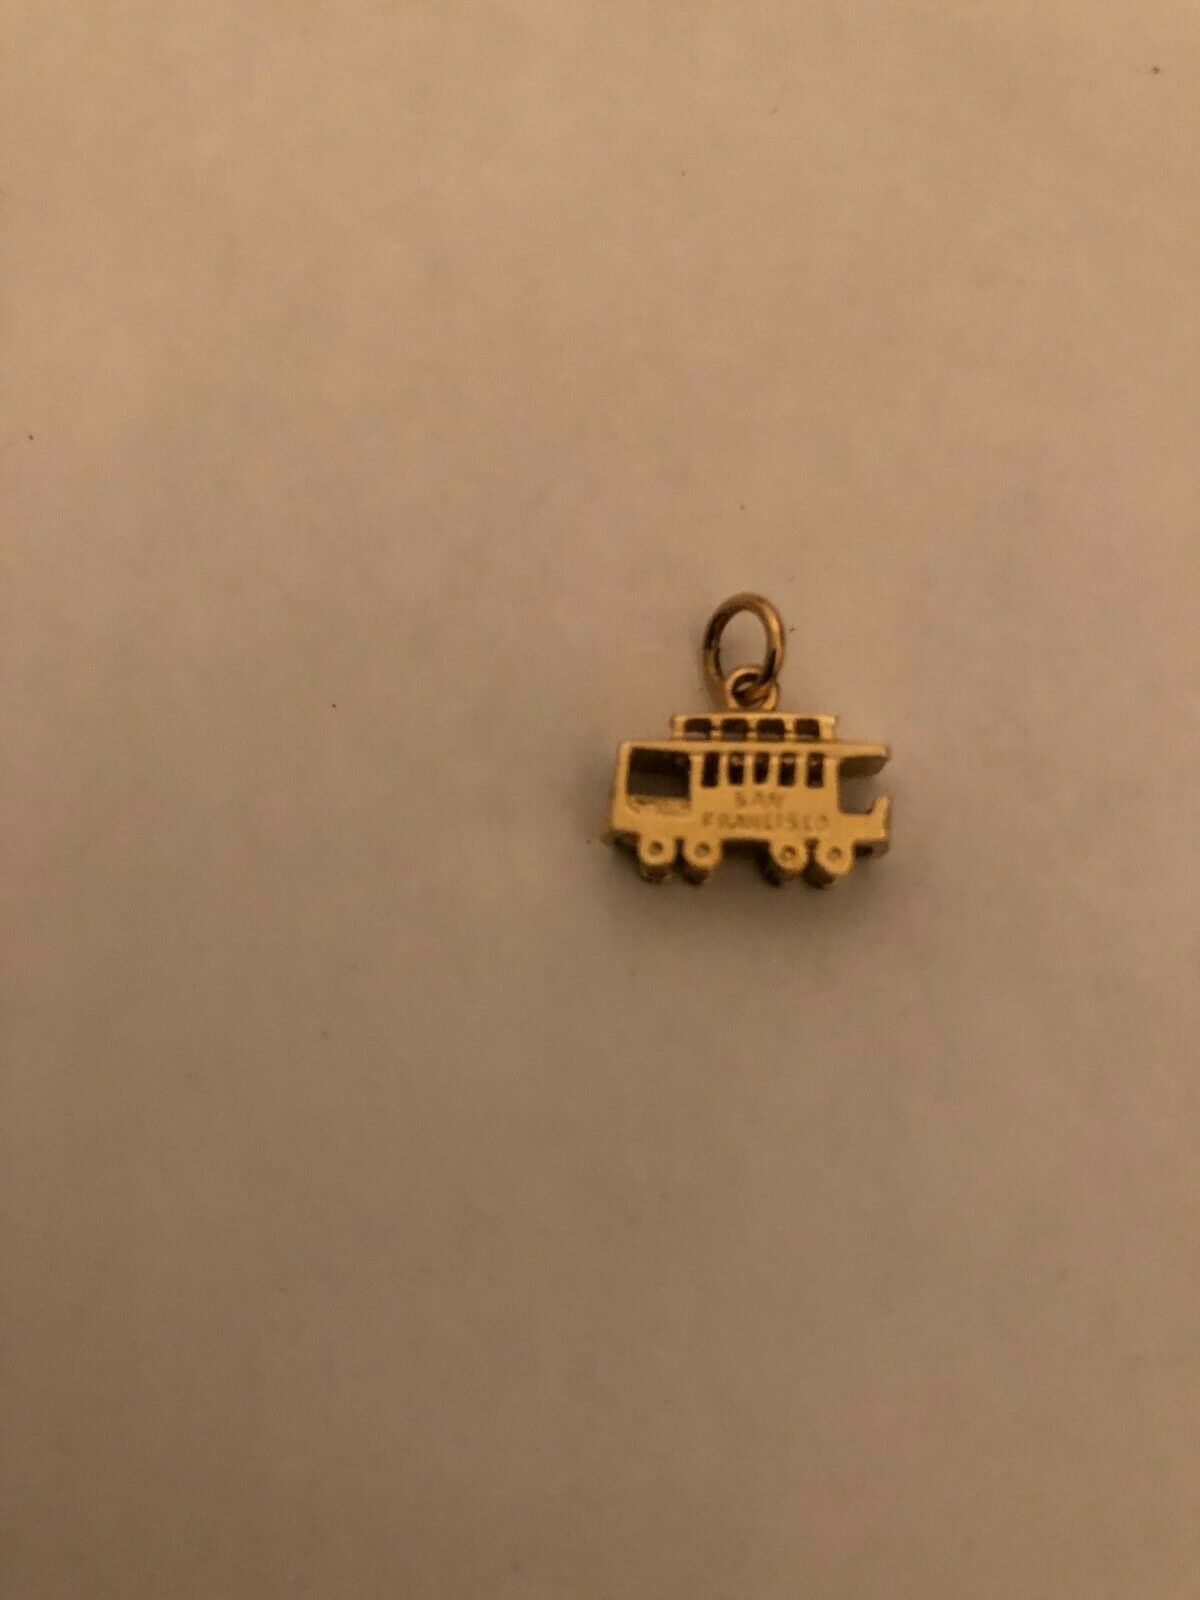 14kt Yellow Gold 3D Handmade High Polished San Francisco Cable Car Pendant New - $105.00